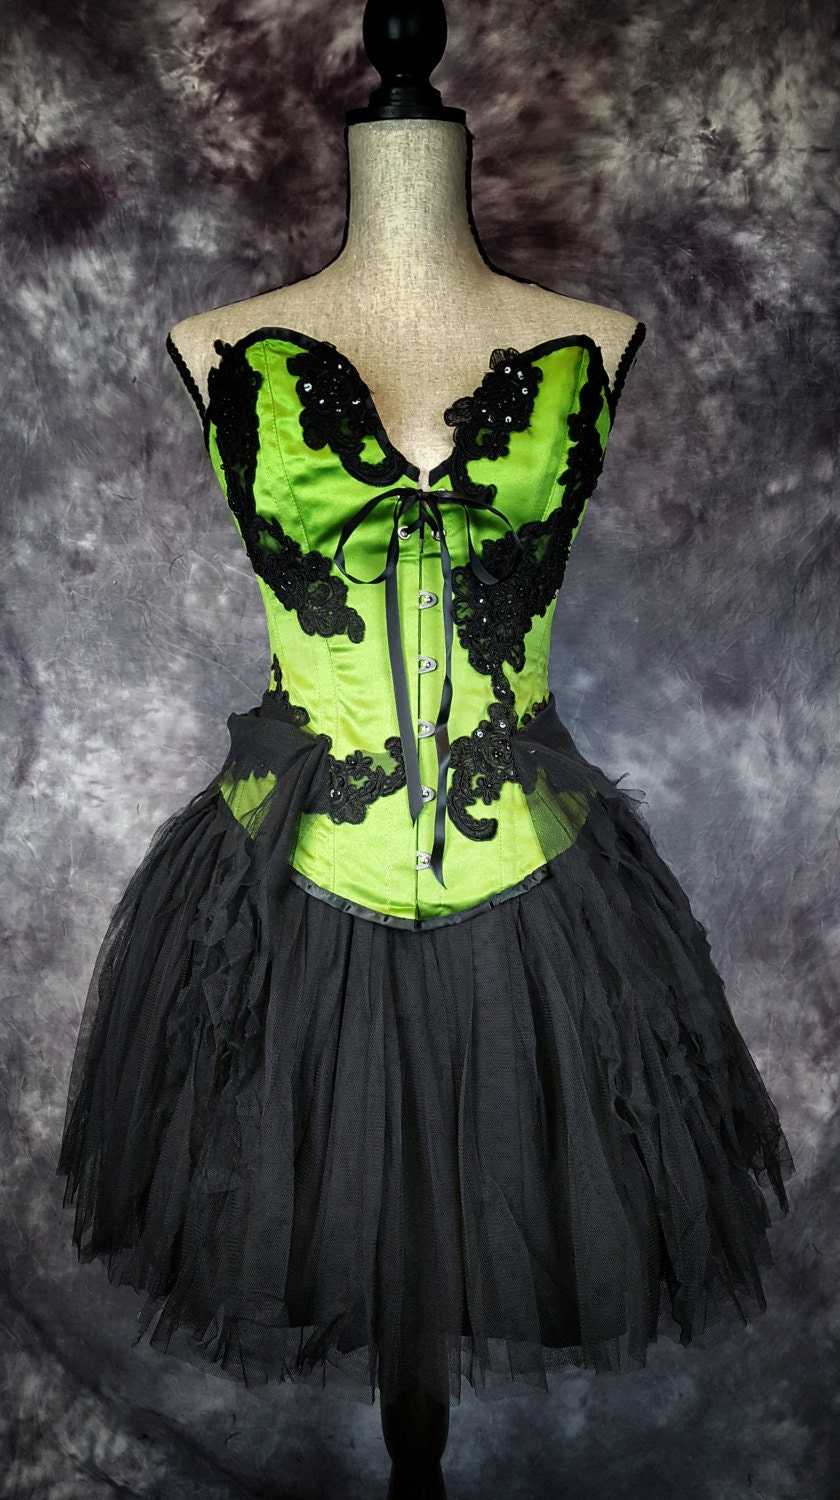 Alternative Goth Outfit Ideas For Prom